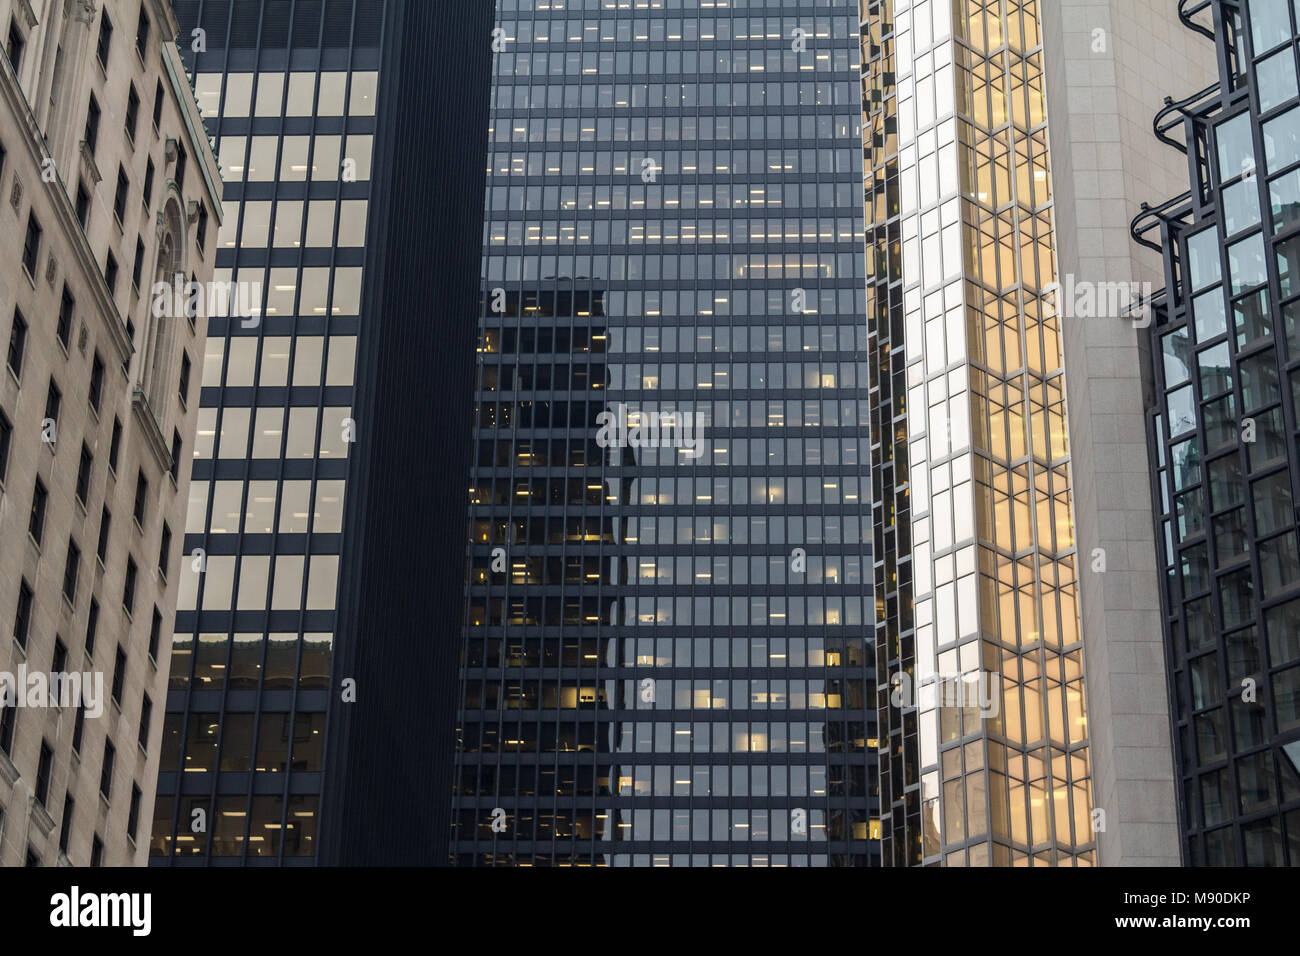 Skyscrapers reflecting in the mirror like windows of another modern high rise in Toronto, Ontario, Canada  Picture - Stock Image